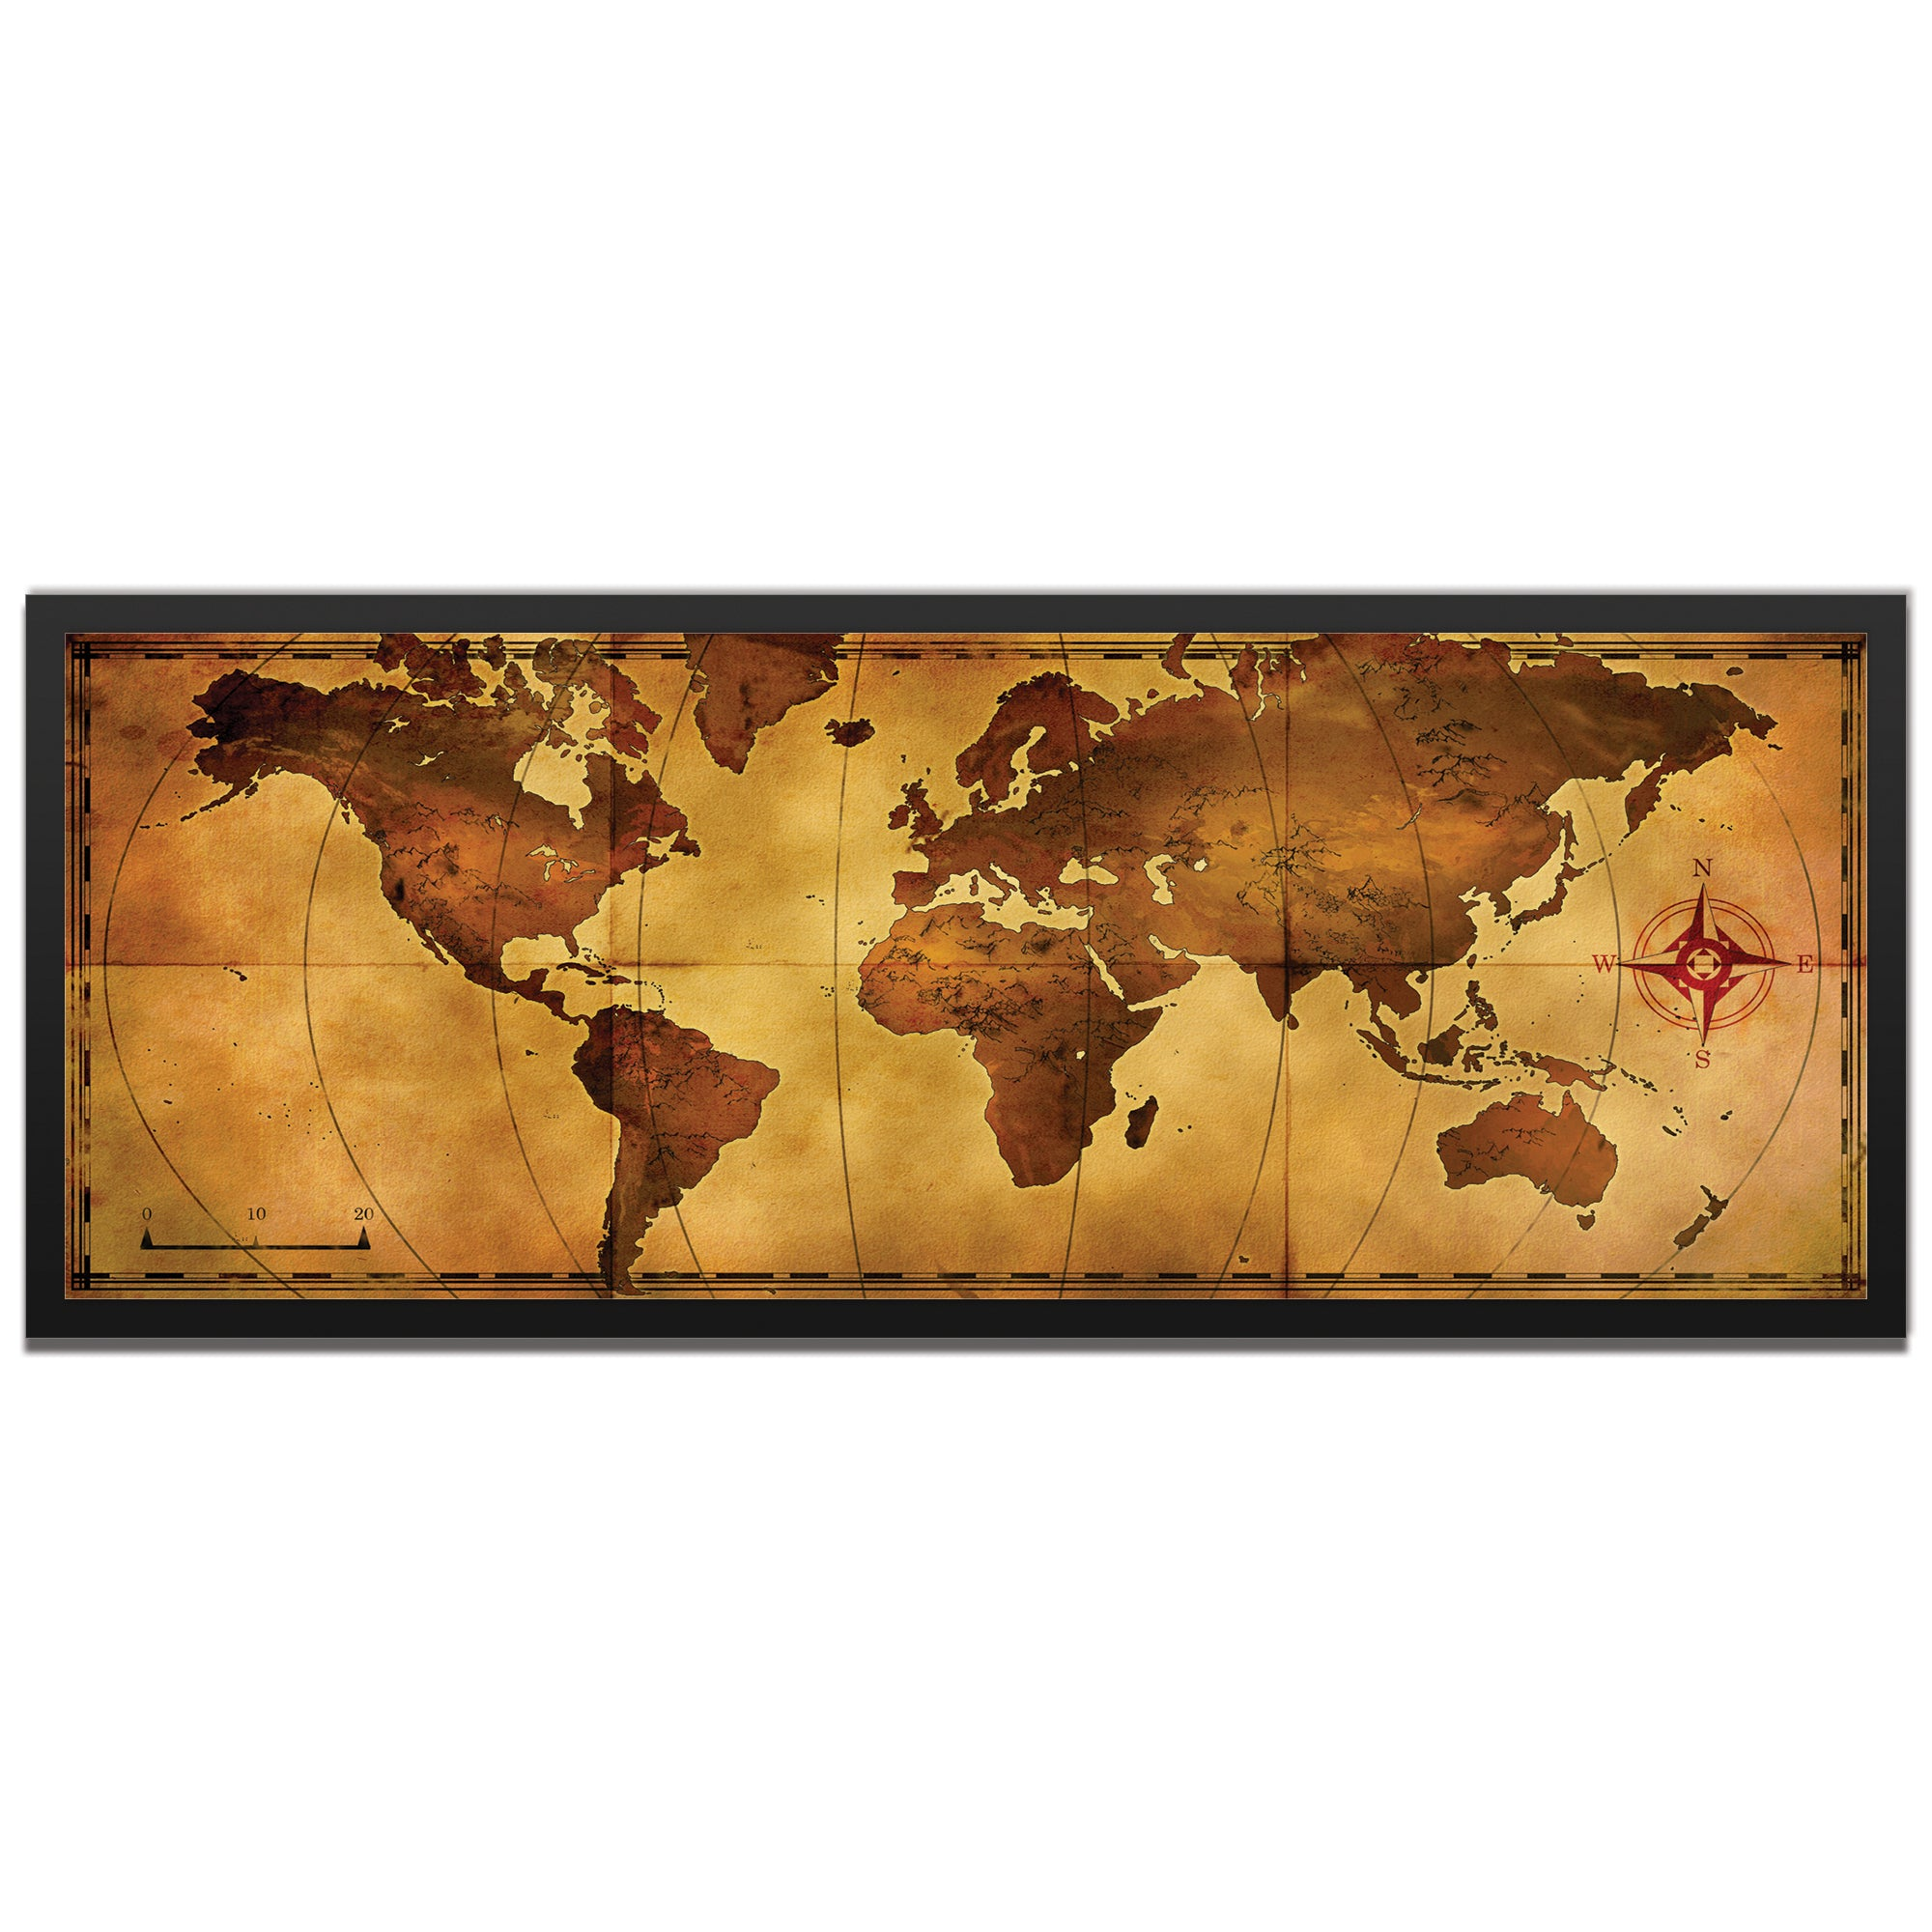 Old World Map Framed by Alan Rodriguez - Traditional World Map Art on Colored Metal